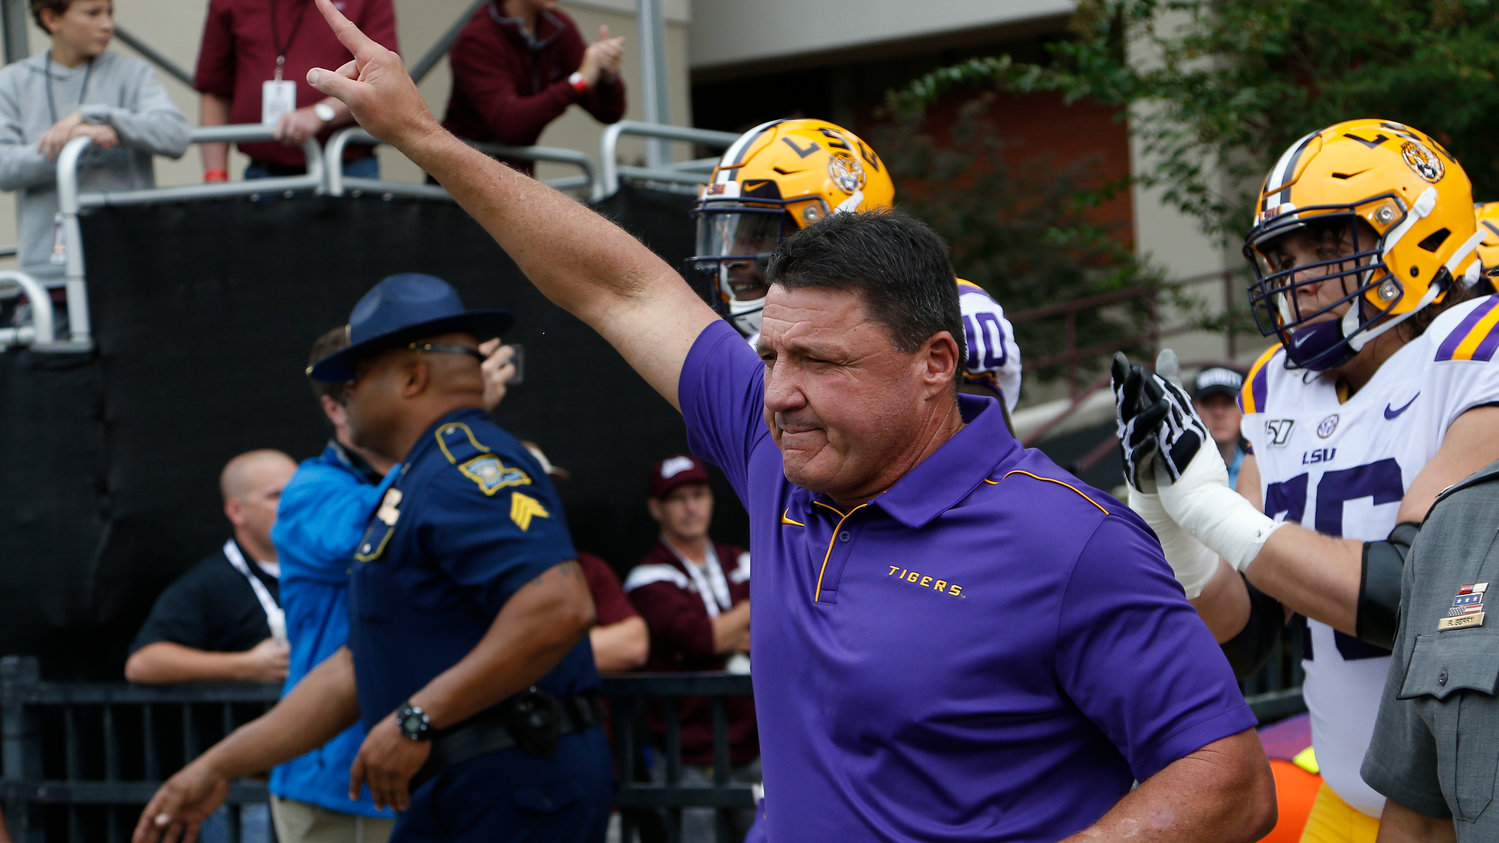 LSU head coach Ed Orgeron gestures as he leads his team on the field prior to their NCAA college football game against Mississippi State in Starkville, Miss., Saturday, Oct. 19, 2019. LSU won 36-13. (AP Photo/Rogelio V. Solis)